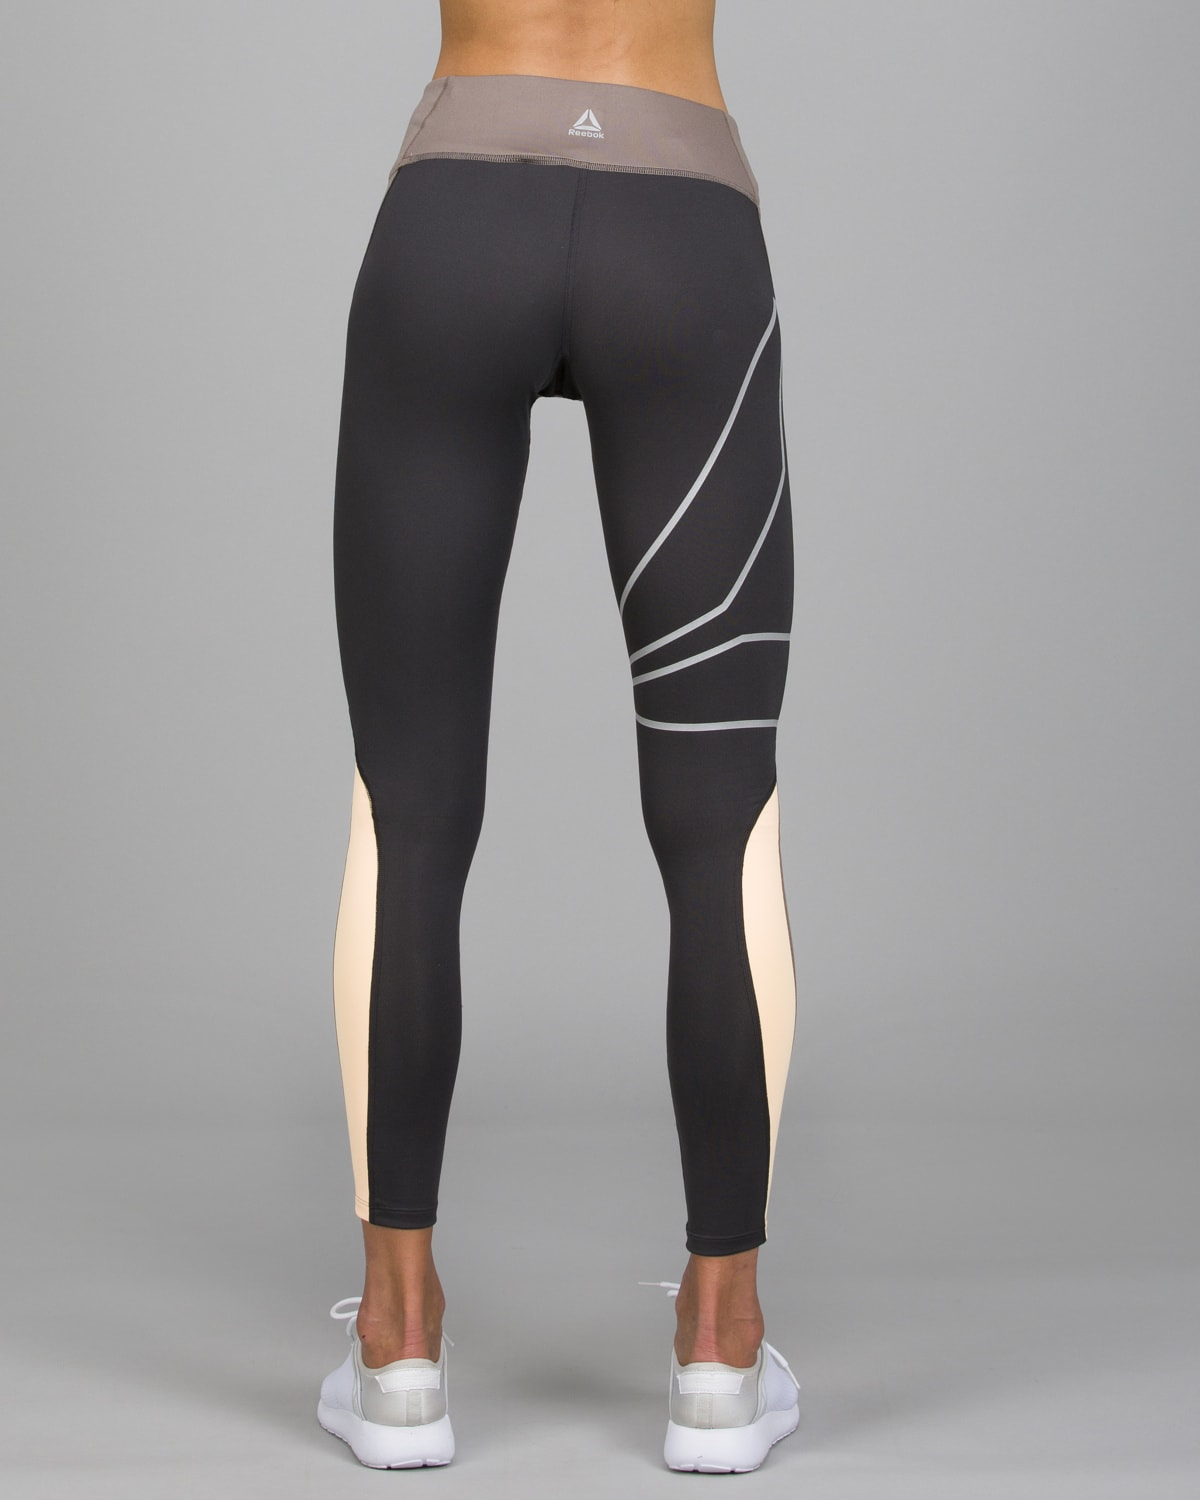 Reebok Running SpeedWick Tights.Smoky Taupe3